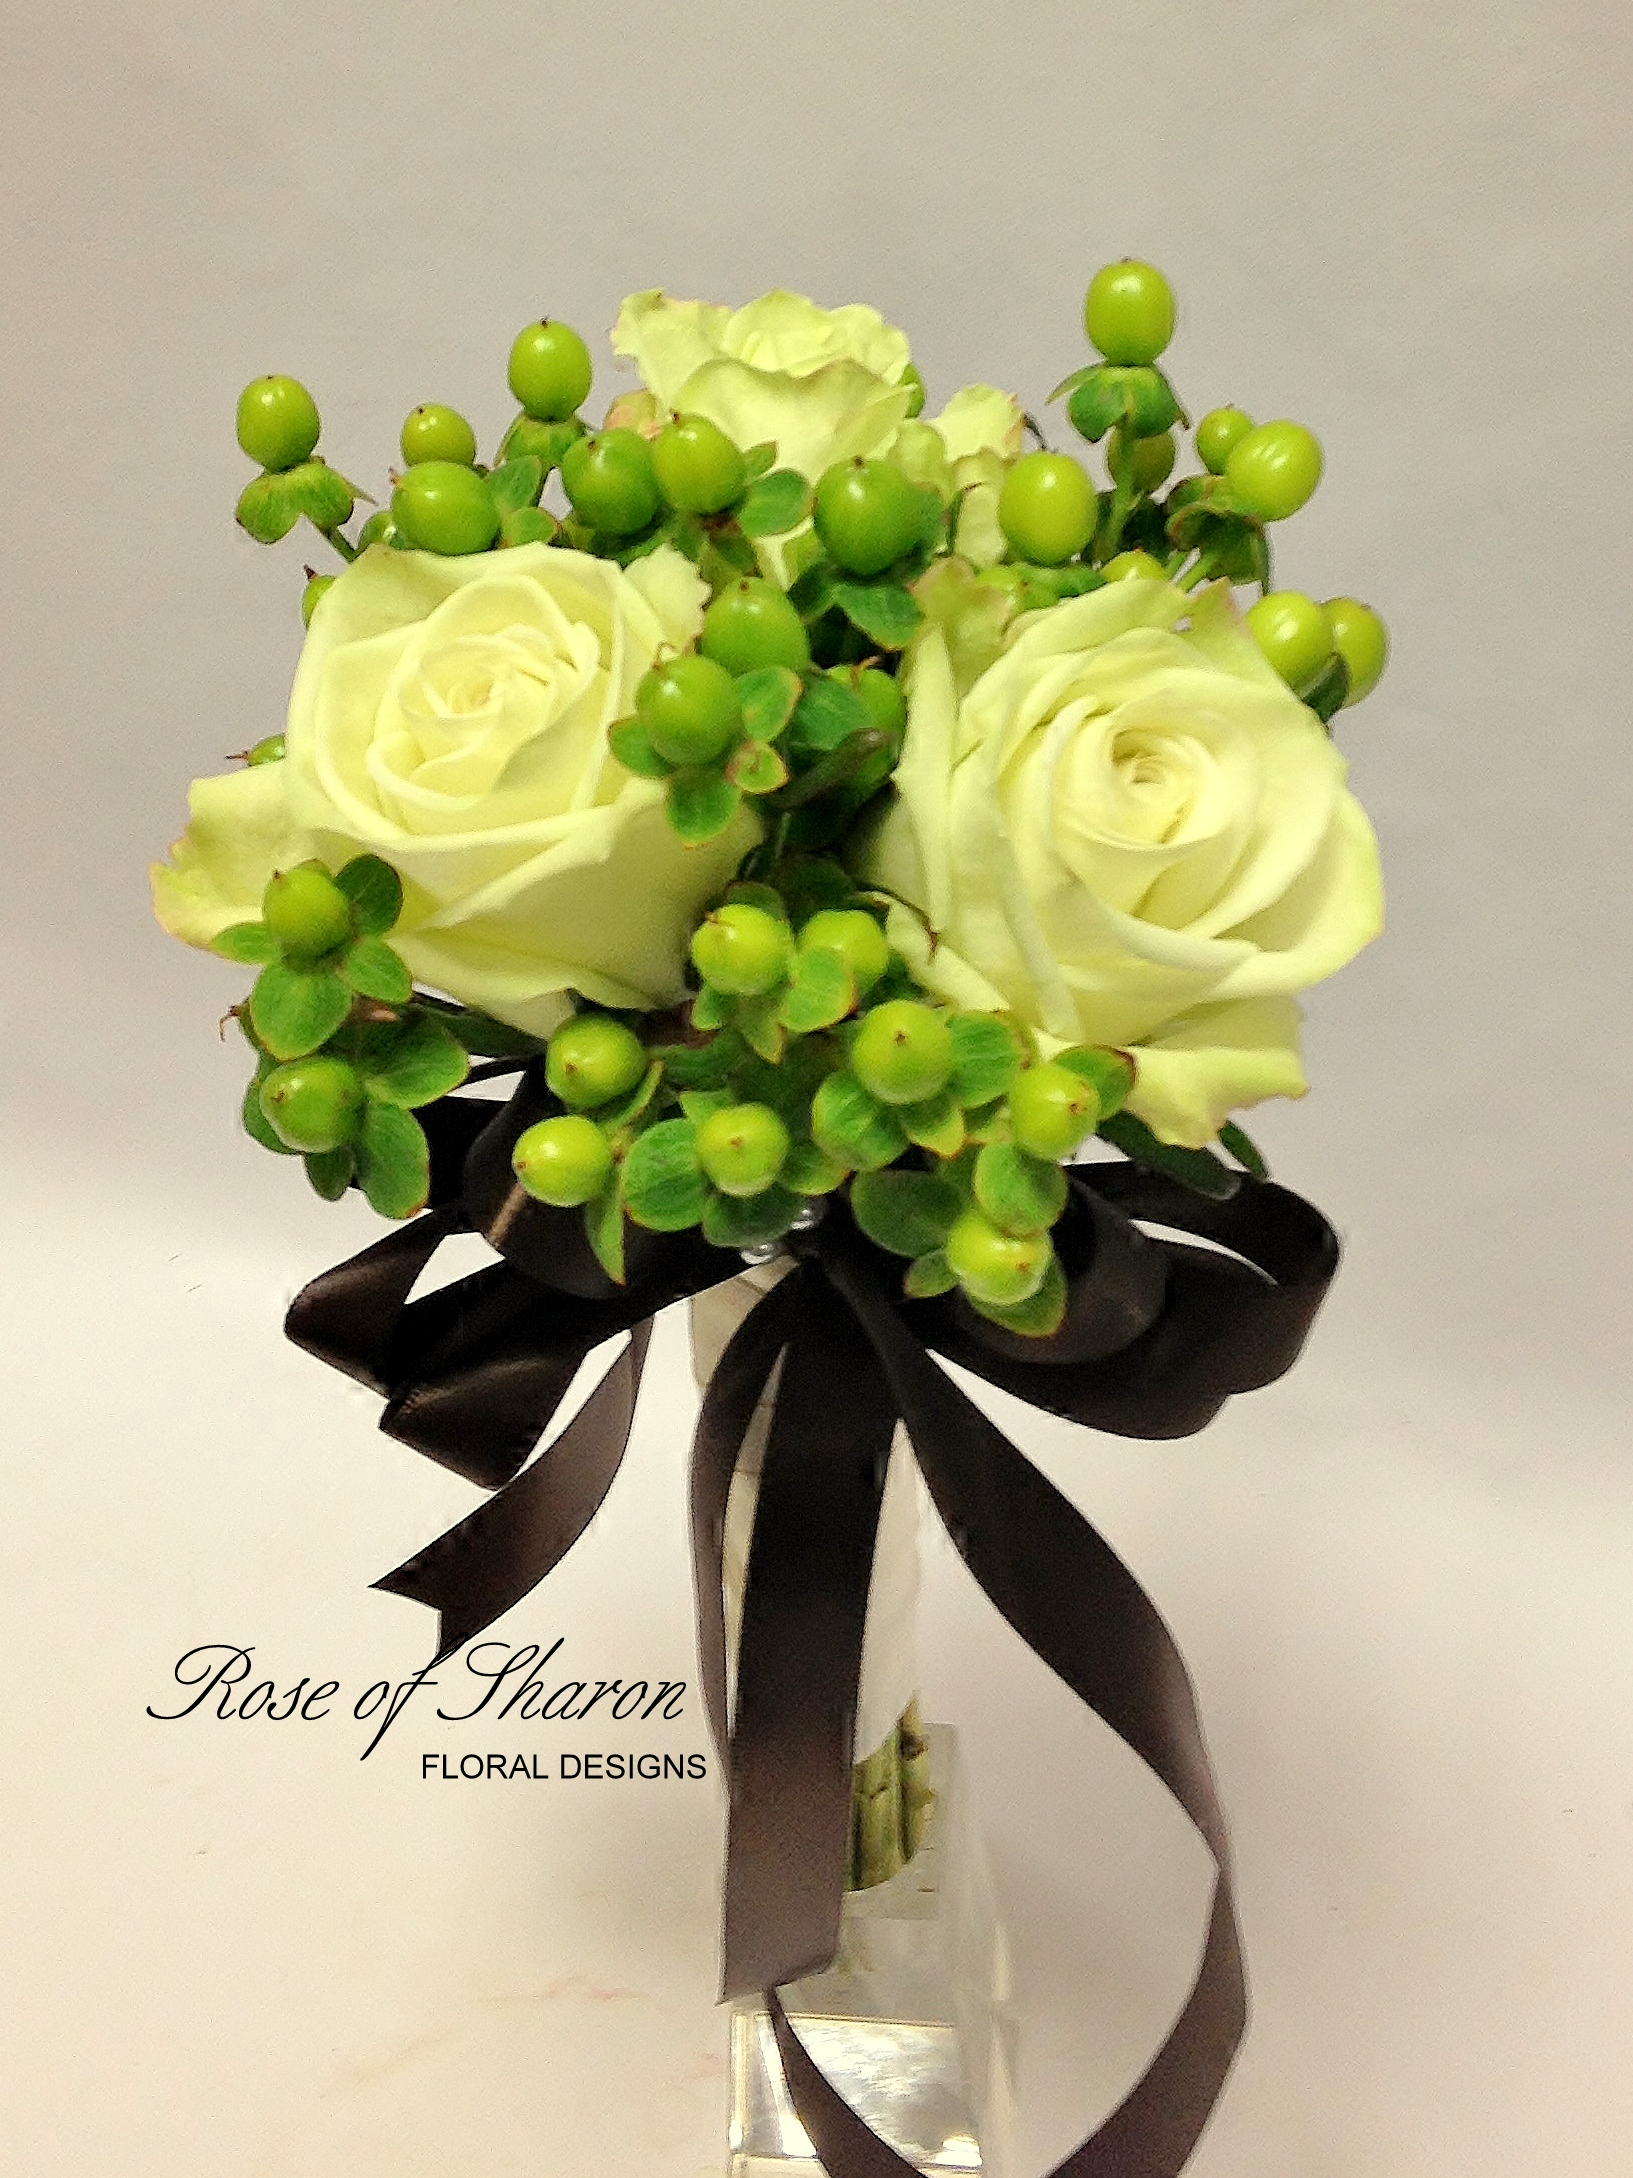 Rose and Hypericum Berry Nosegay Bouquet. Rose of Sharon Floral Designs